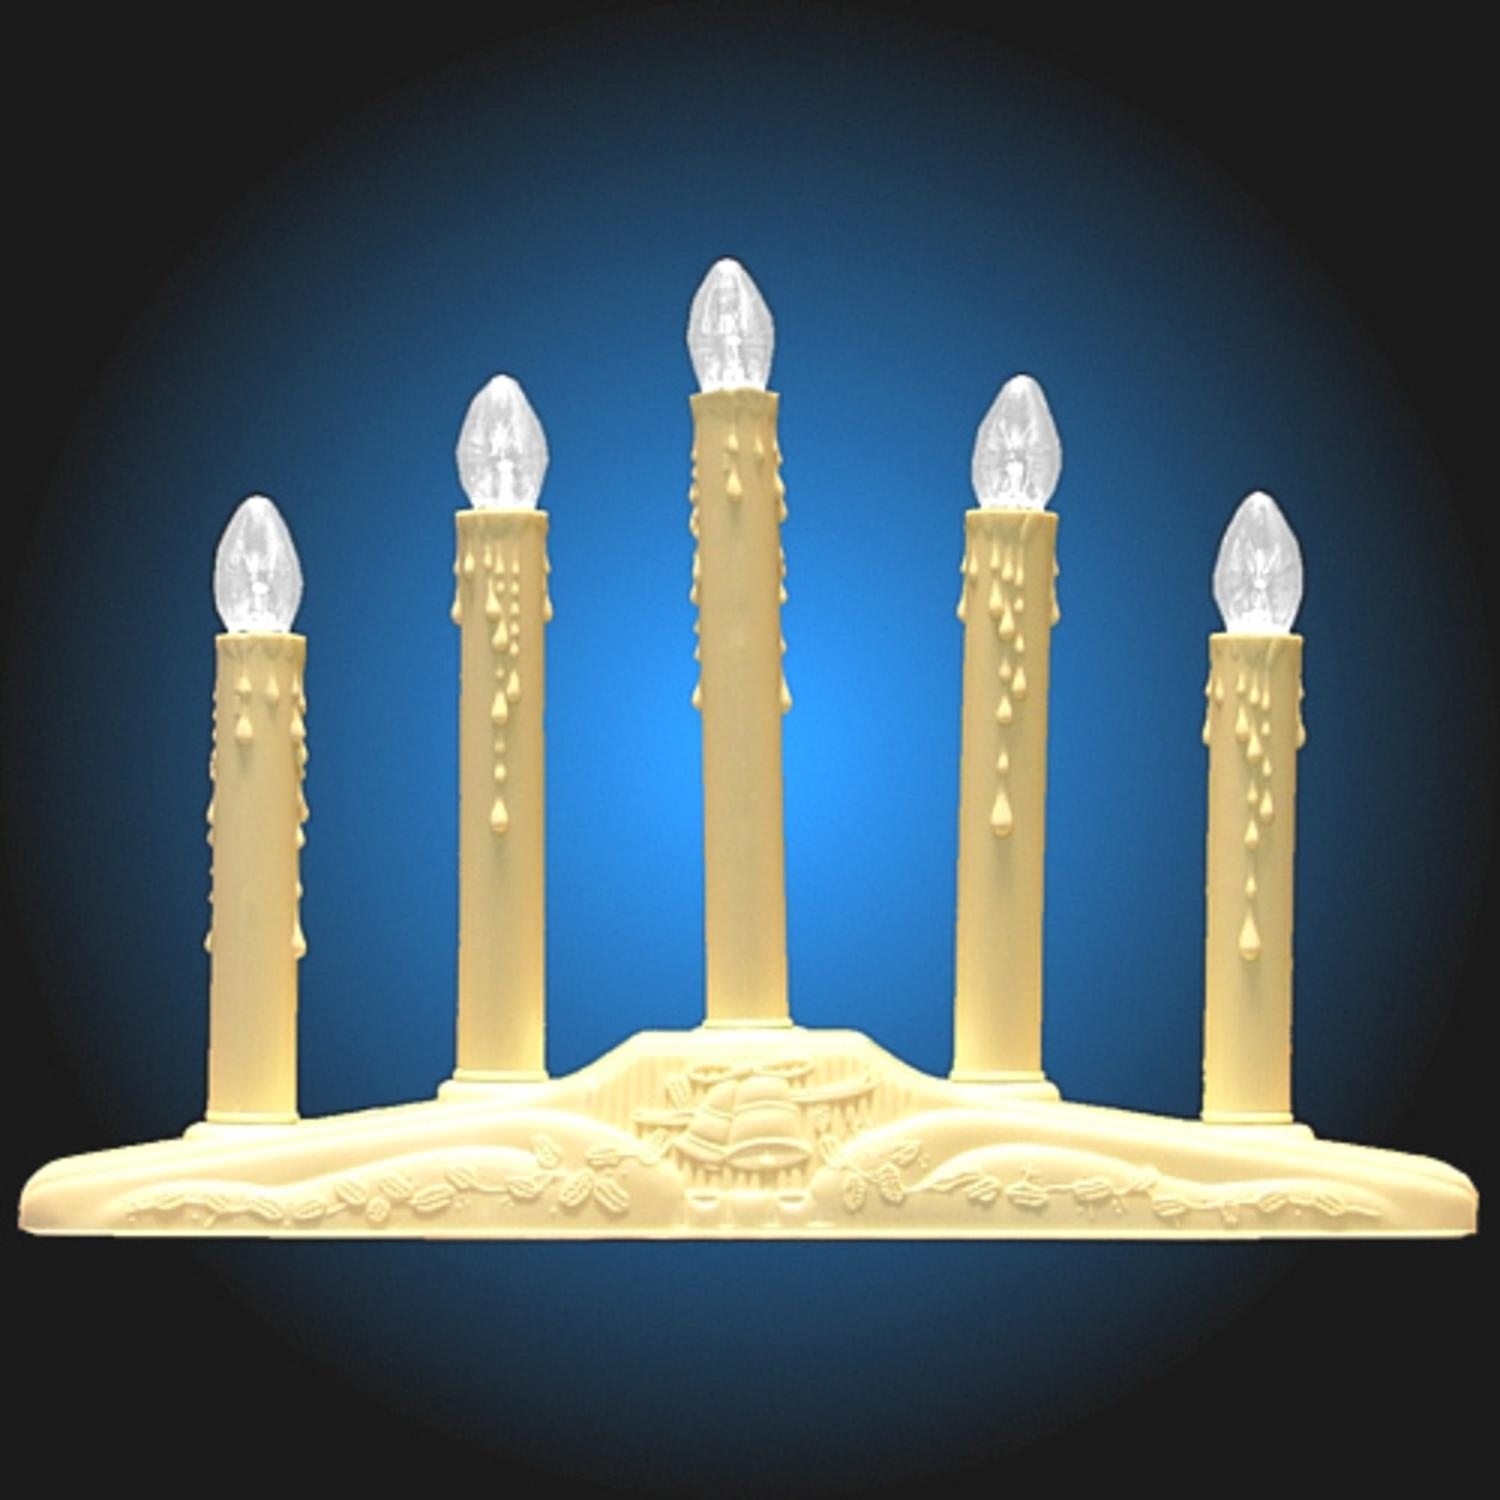 5 light ivory candolier christmas indoor candle lamp walmartcom - Christmas Candles For Windows